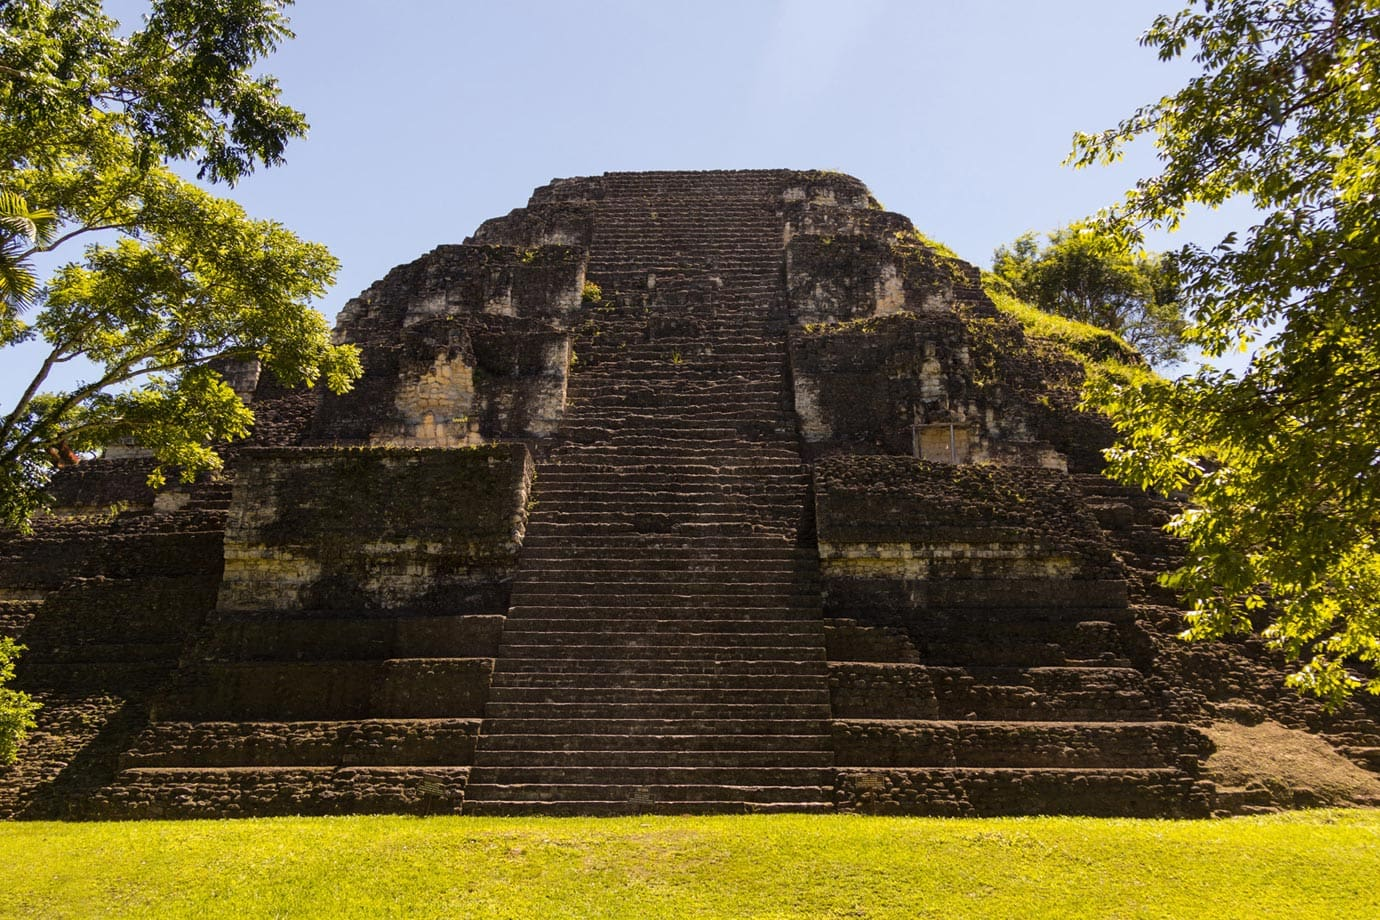 From 250BC to 700AD, Tikal became an extremely important city in Central America